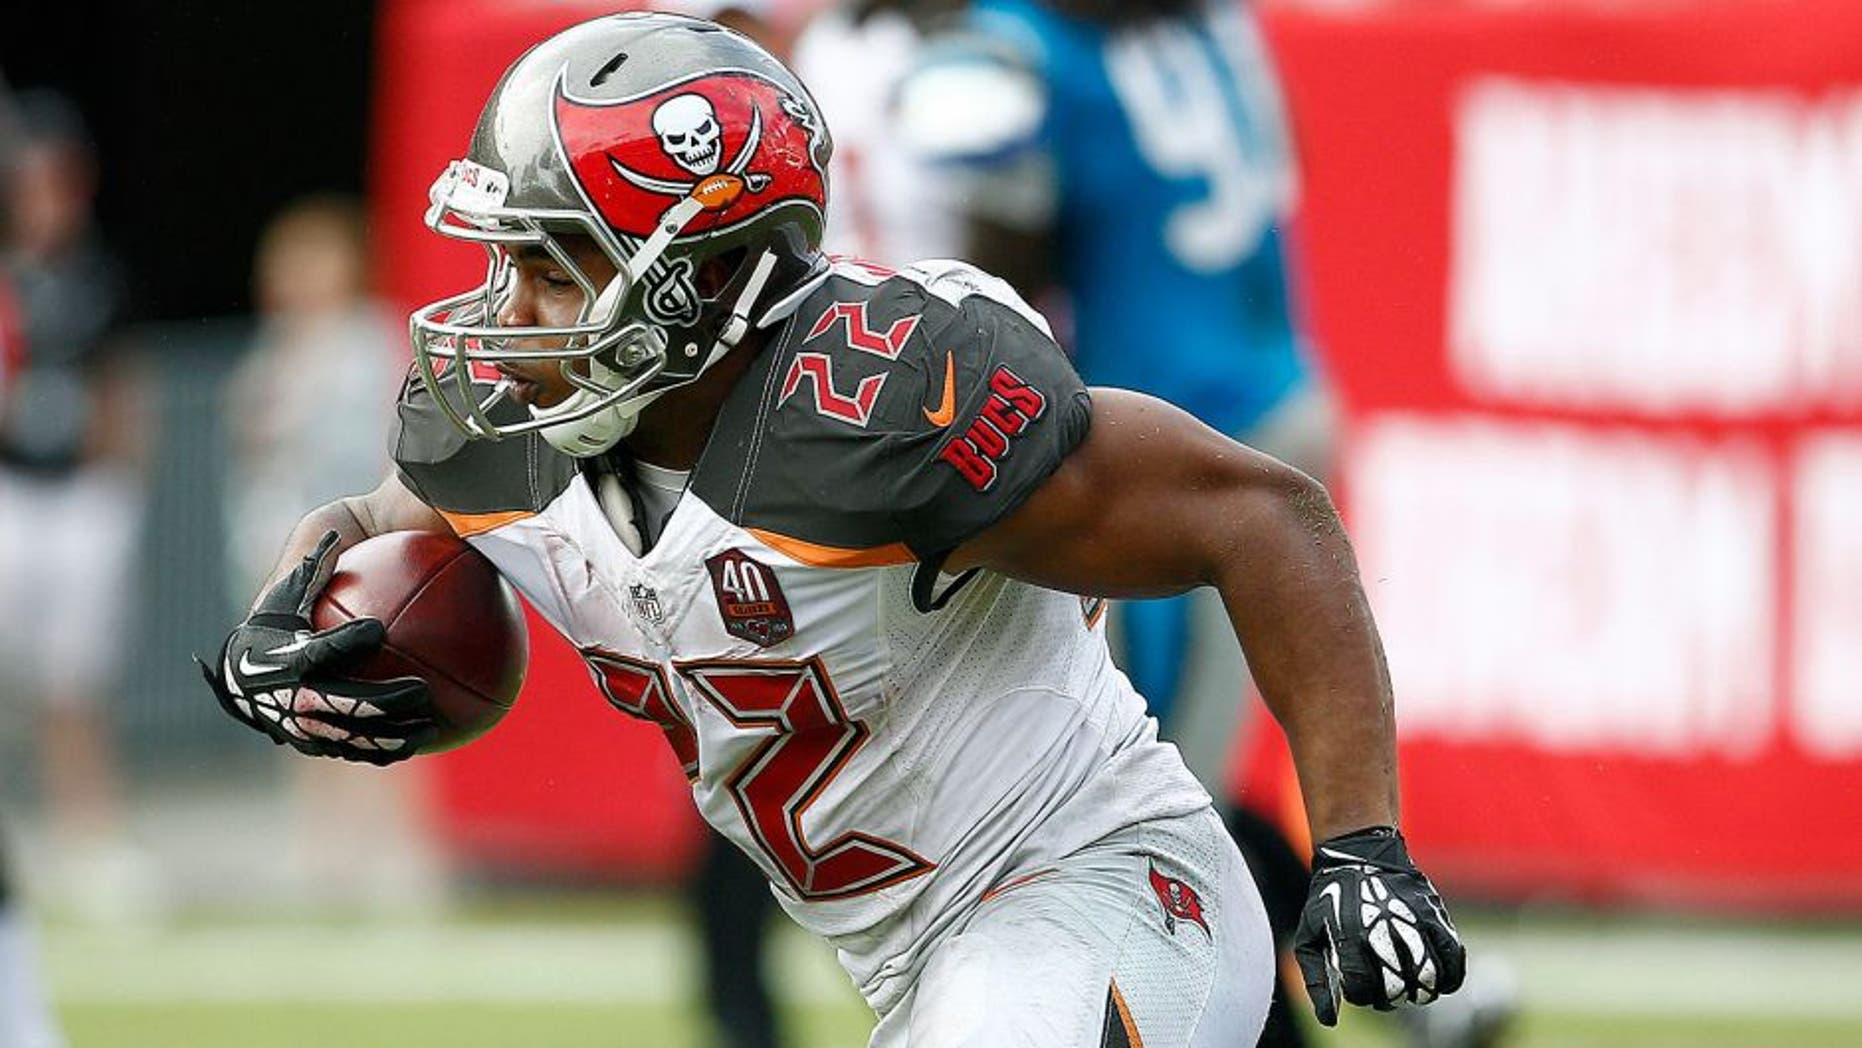 Oct 4, 2015; Tampa, FL, USA; Tampa Bay Buccaneers running back Doug Martin (22) runs for a first down during the fourth quarter of an NFL football game against the Carolina Panthers at Raymond James Stadium. Carolina won 37-23. Mandatory Credit: Reinhold Matay-USA TODAY Sports